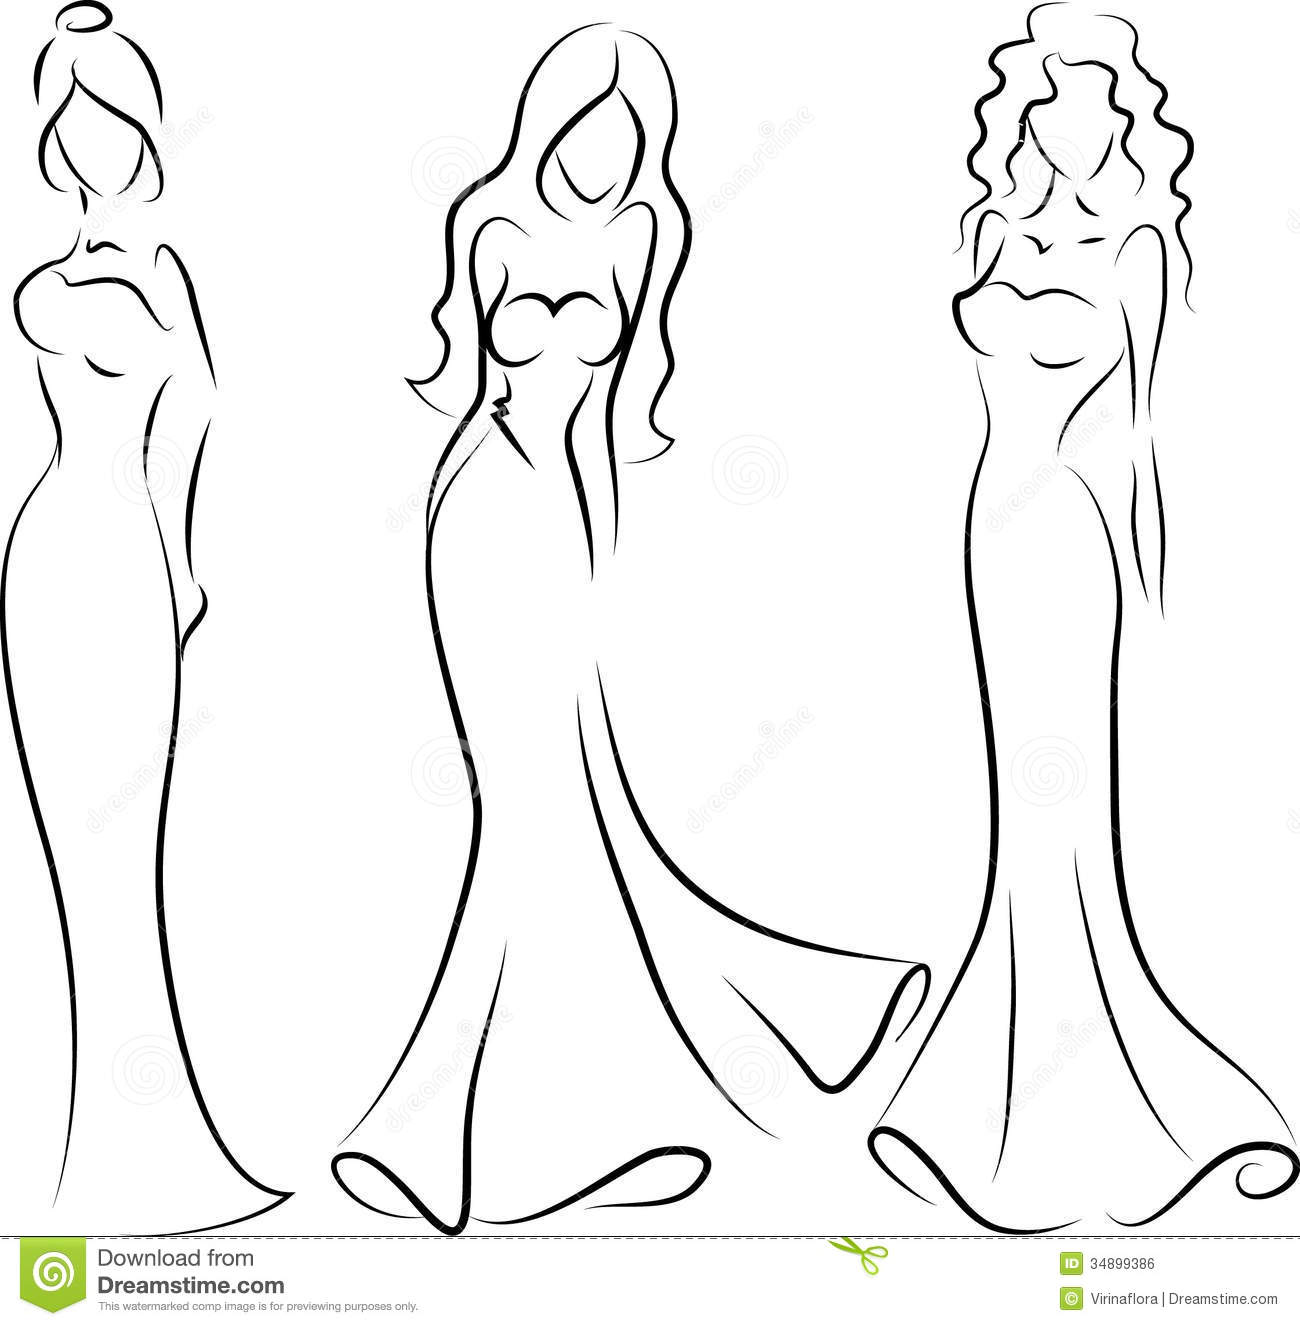 Donna Reed What A Star further 2014 Academy Awards Pages Sketch Templates besides Royalty Free Stock Image Fashion Woman Hand Drawing Illustration Illustration Picture Image34899386 moreover Trophy Clip Art Free moreover Derpy How To Draw Good 280966966. on oscar award drawing